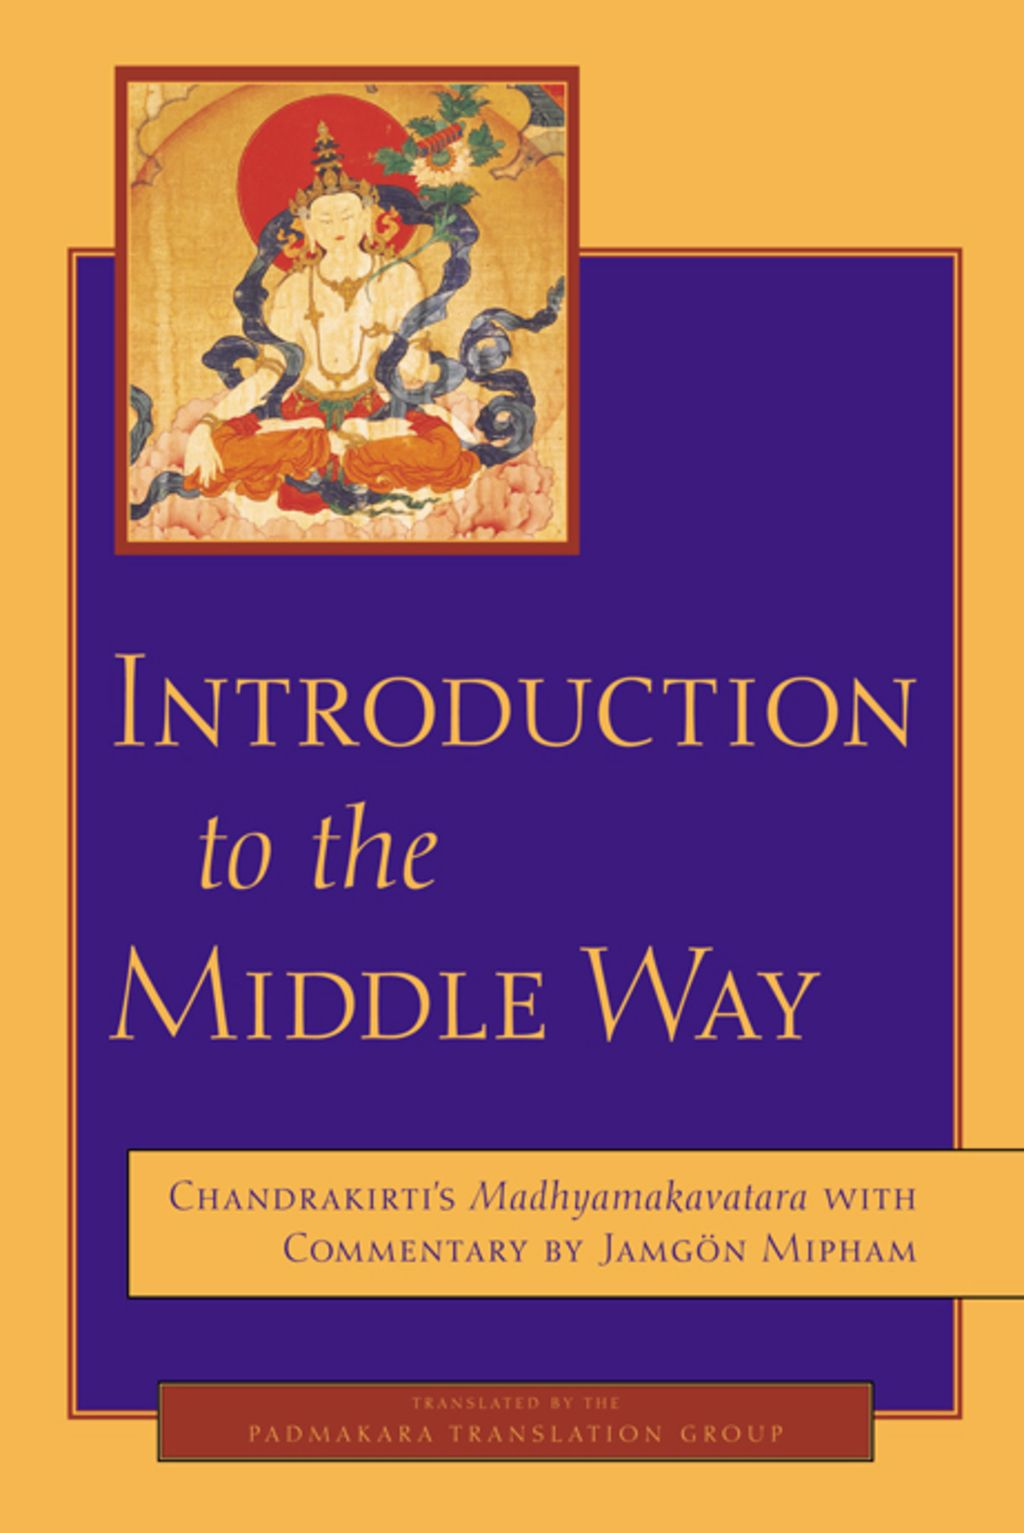 Introduction to the Middle Way (eBook) | Buddhist wisdom ...